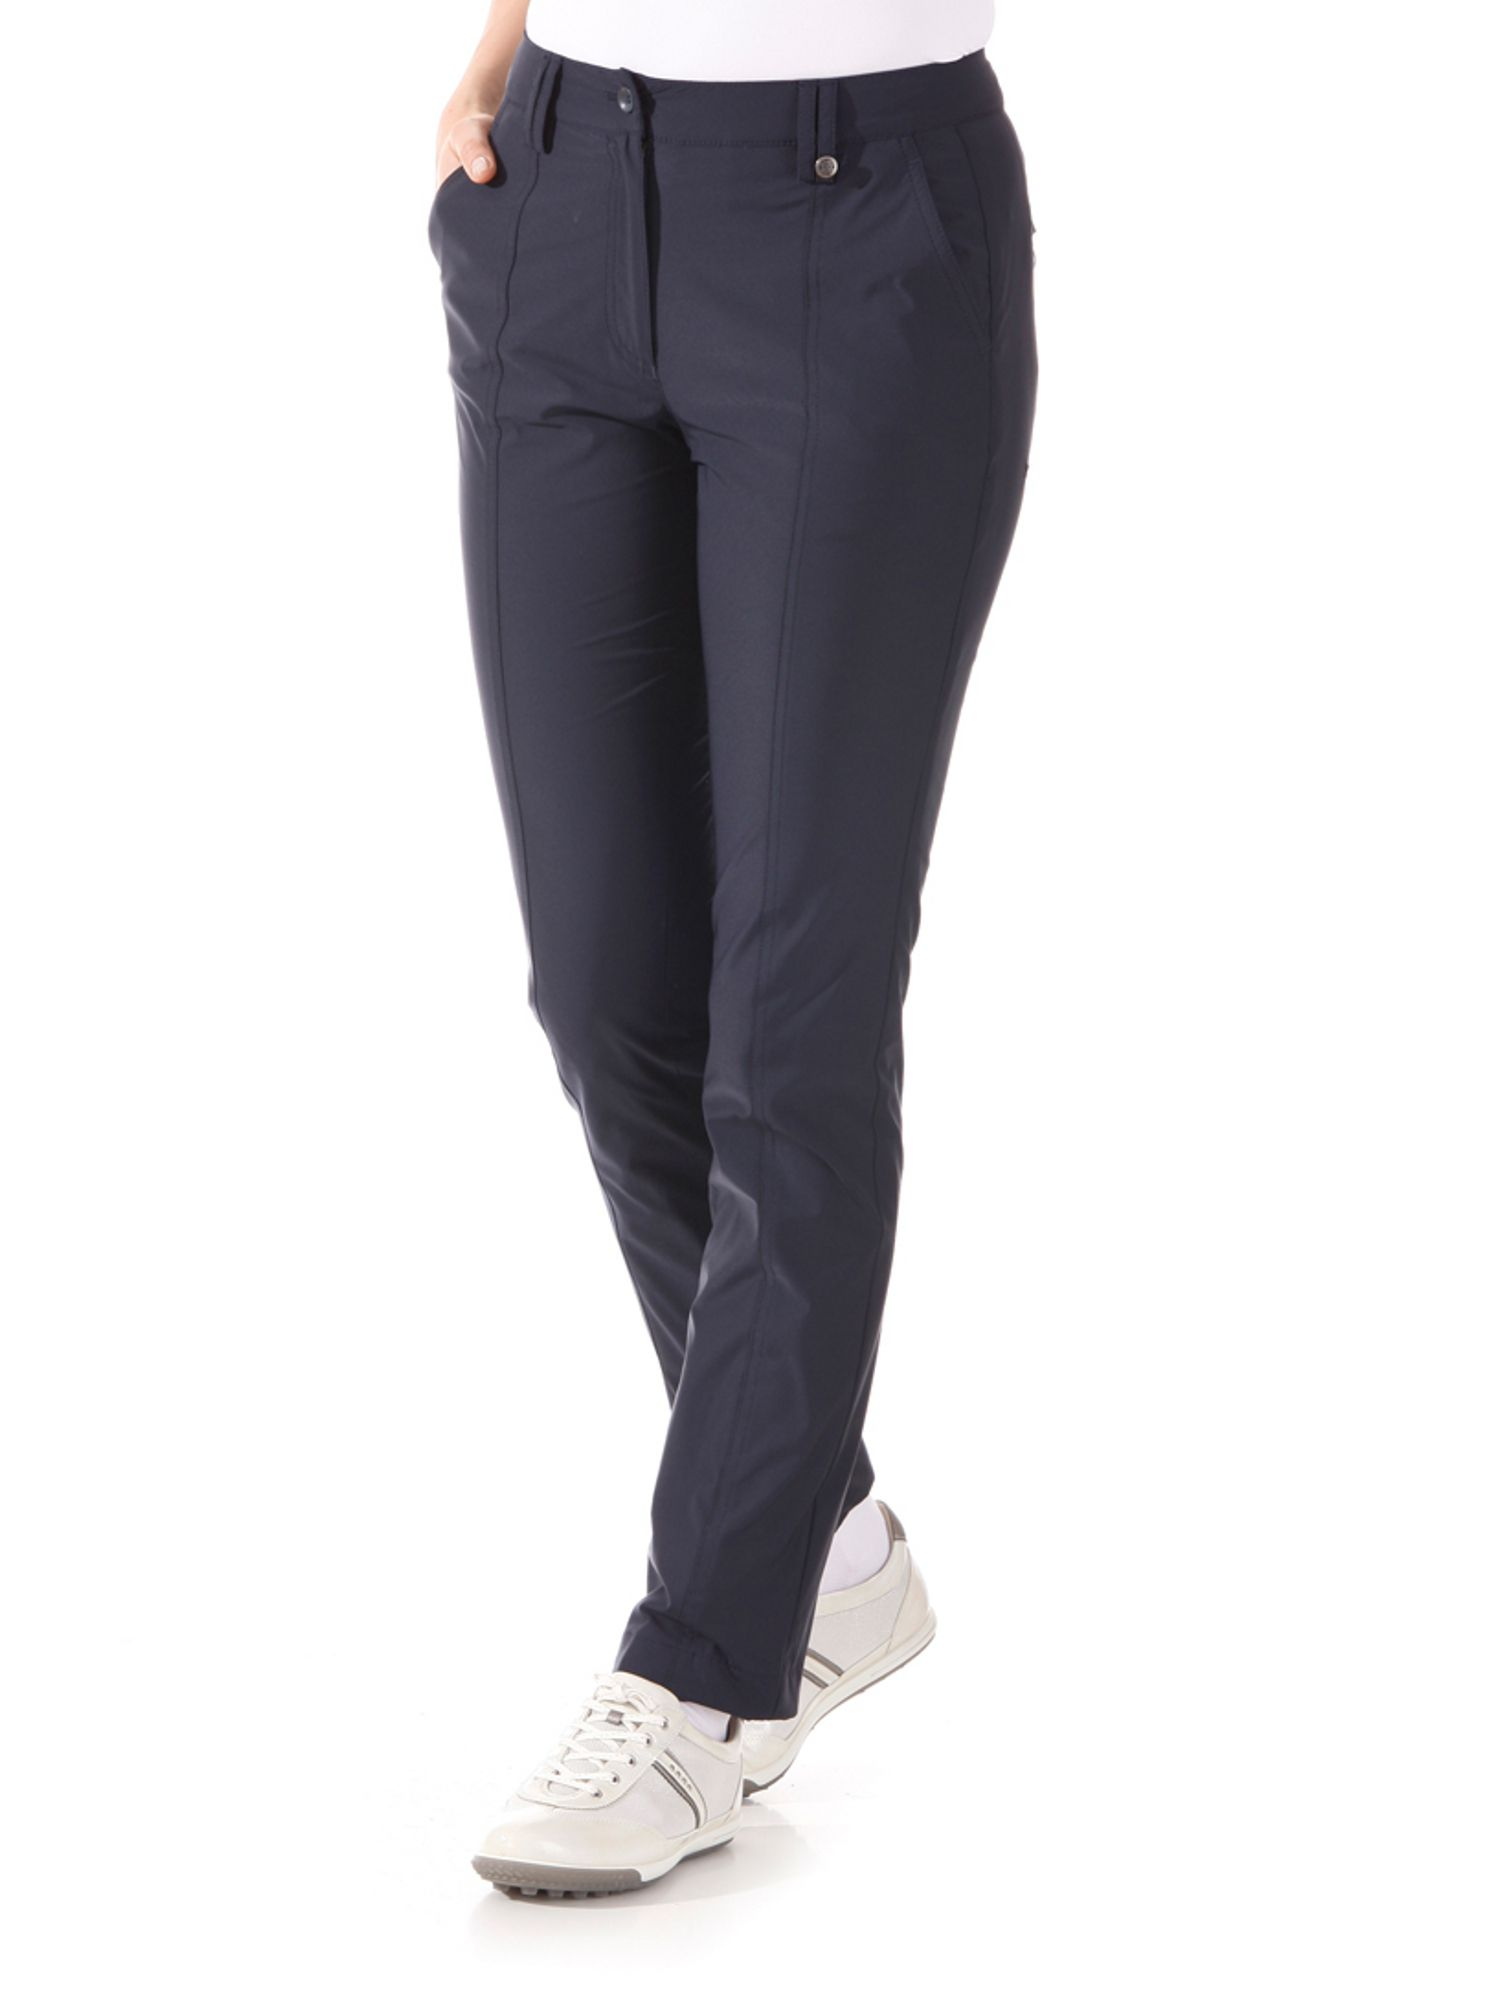 3 Ultra thermo trousers